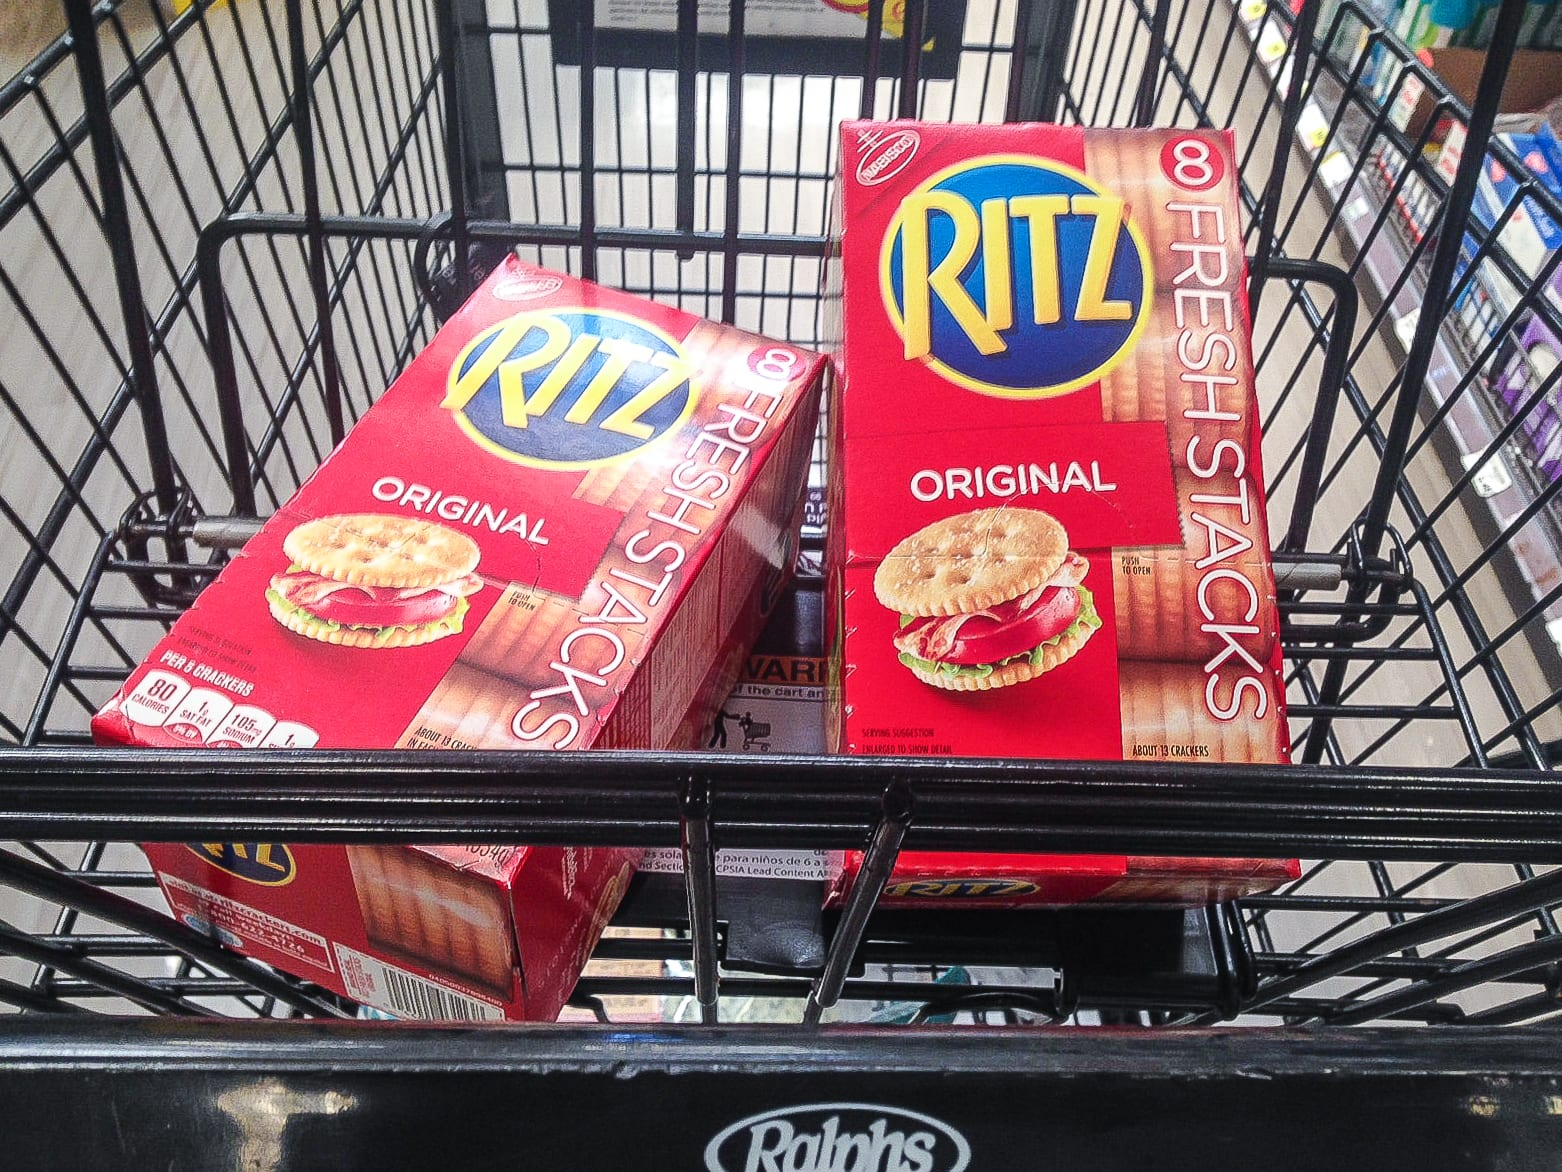 Shopping at Ralph's for RITZ Crackers